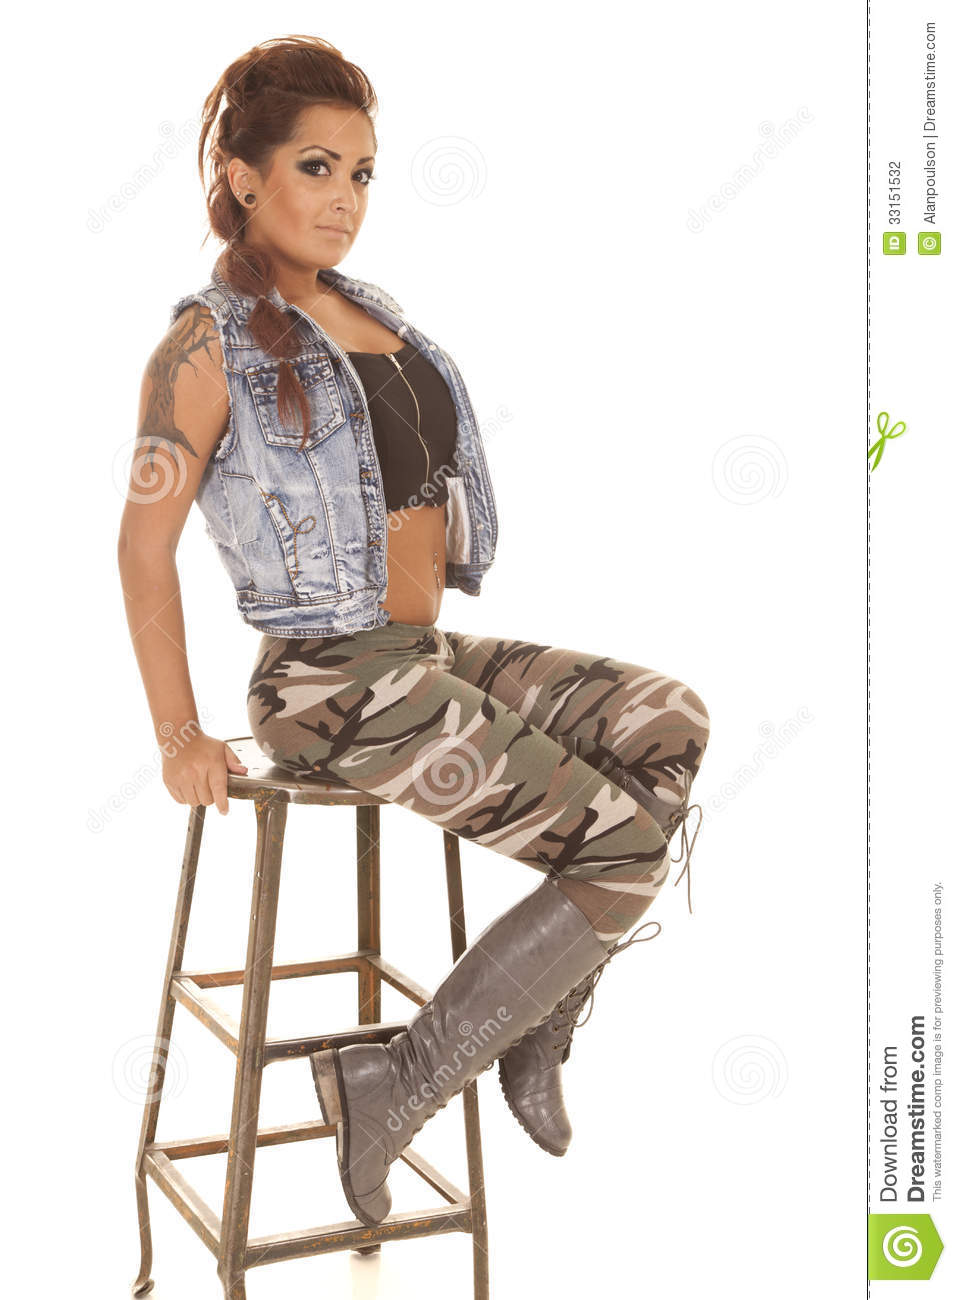 Woman Tattoos Camo Sit Look Stock Photo Image 33151532